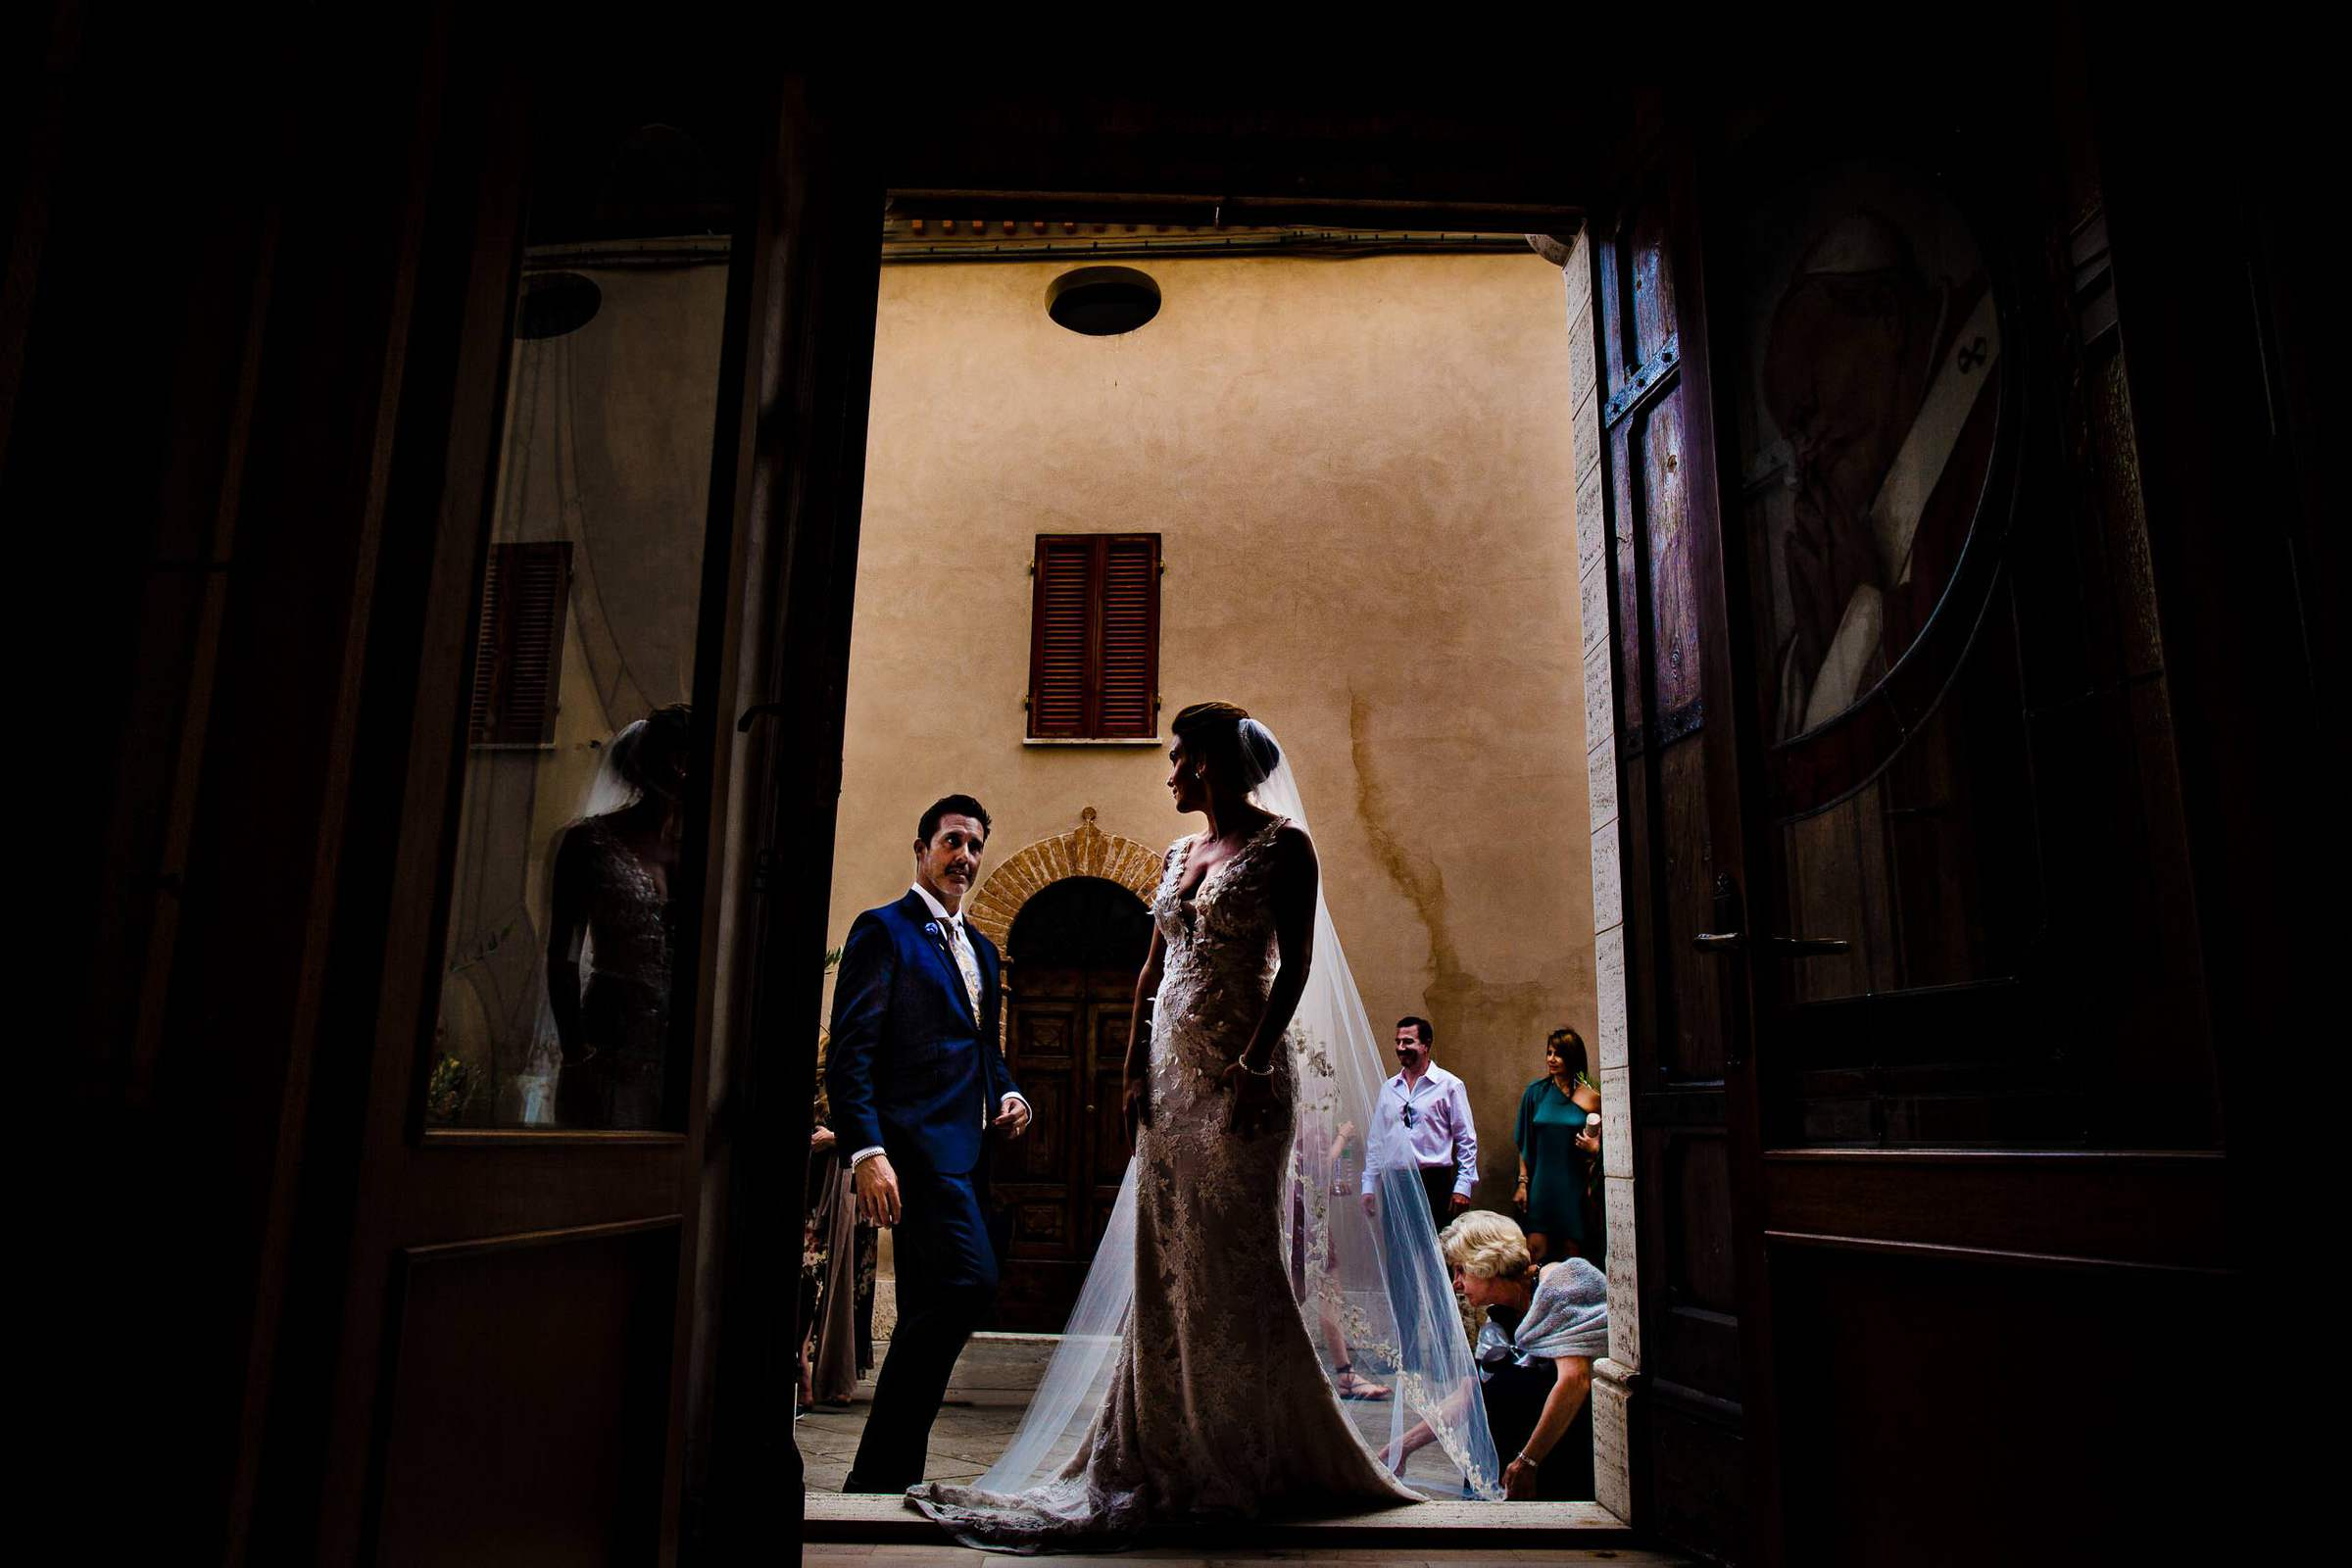 Bride and Groom just outside Doglio in Chiesa di San Salvatore entering into their wedding ceremony